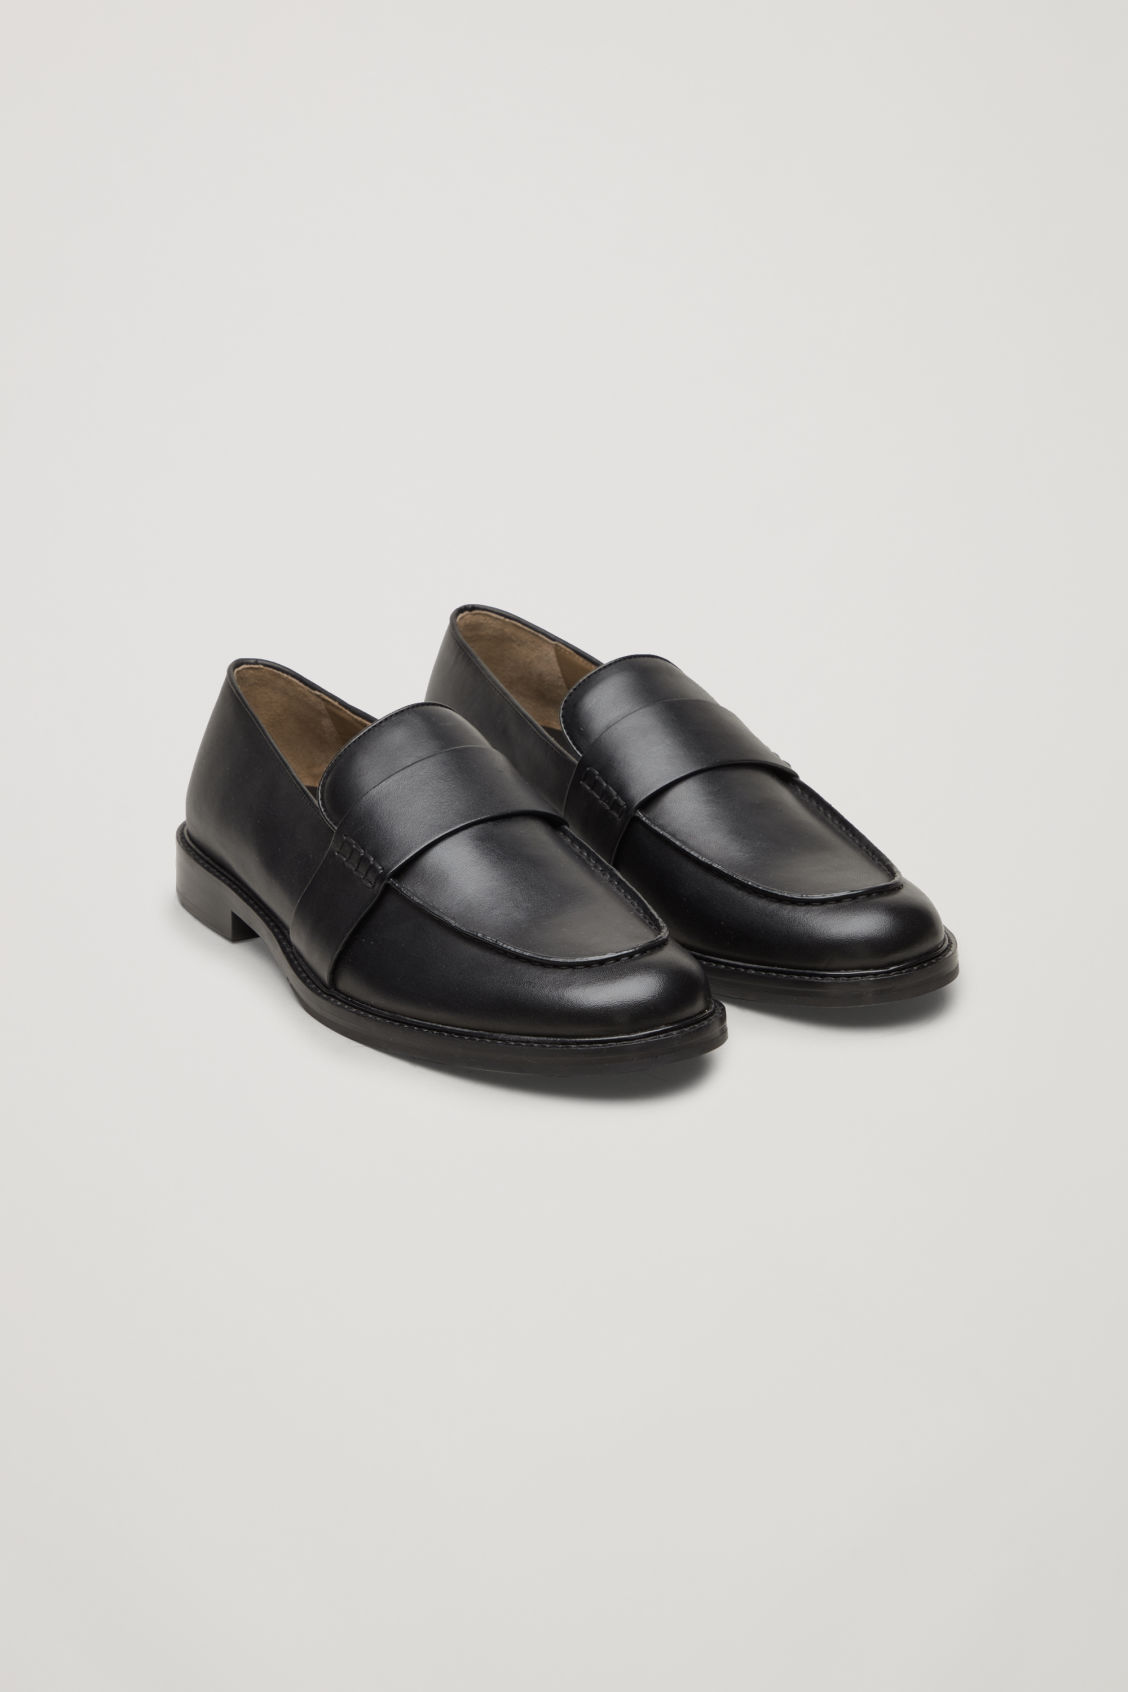 97551d4eebc Front image of Cos leather penny loafers in black